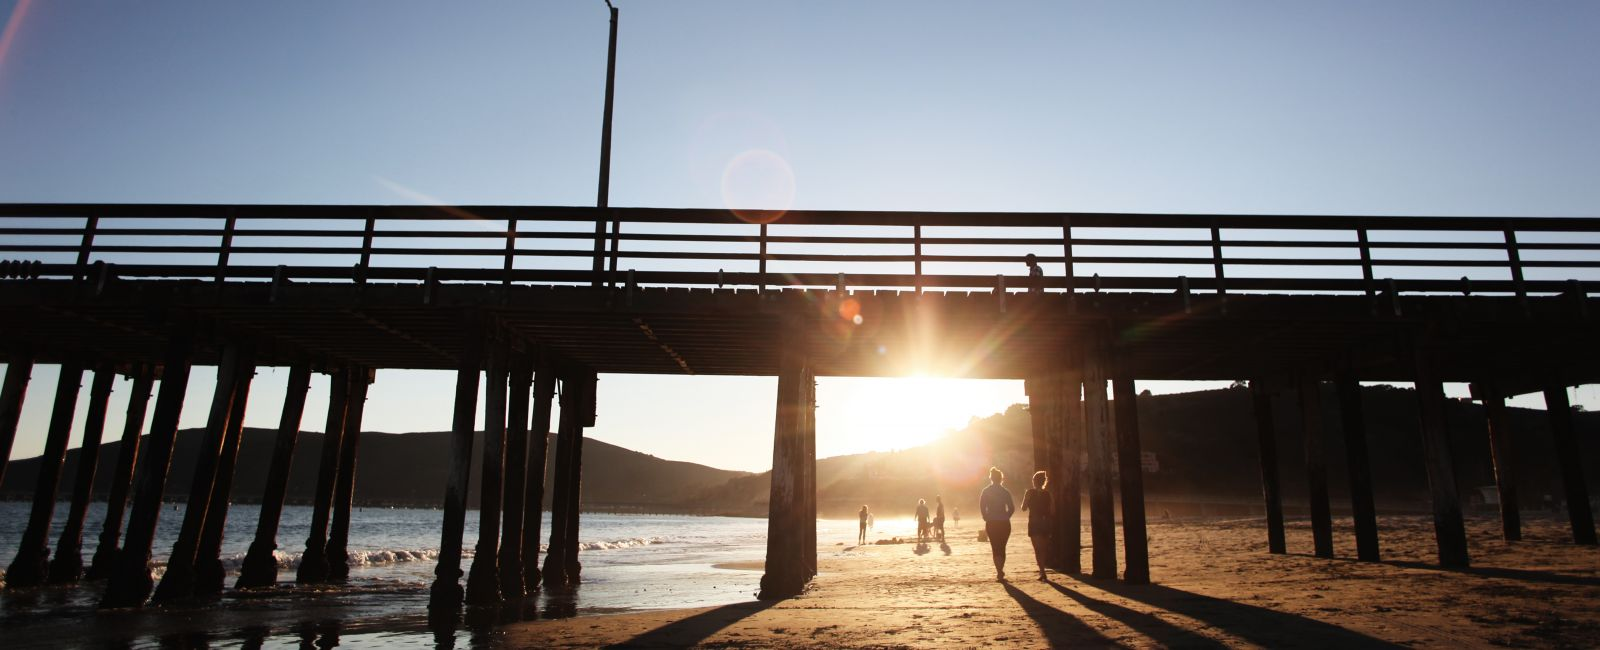 Pier on the Beach in SLO